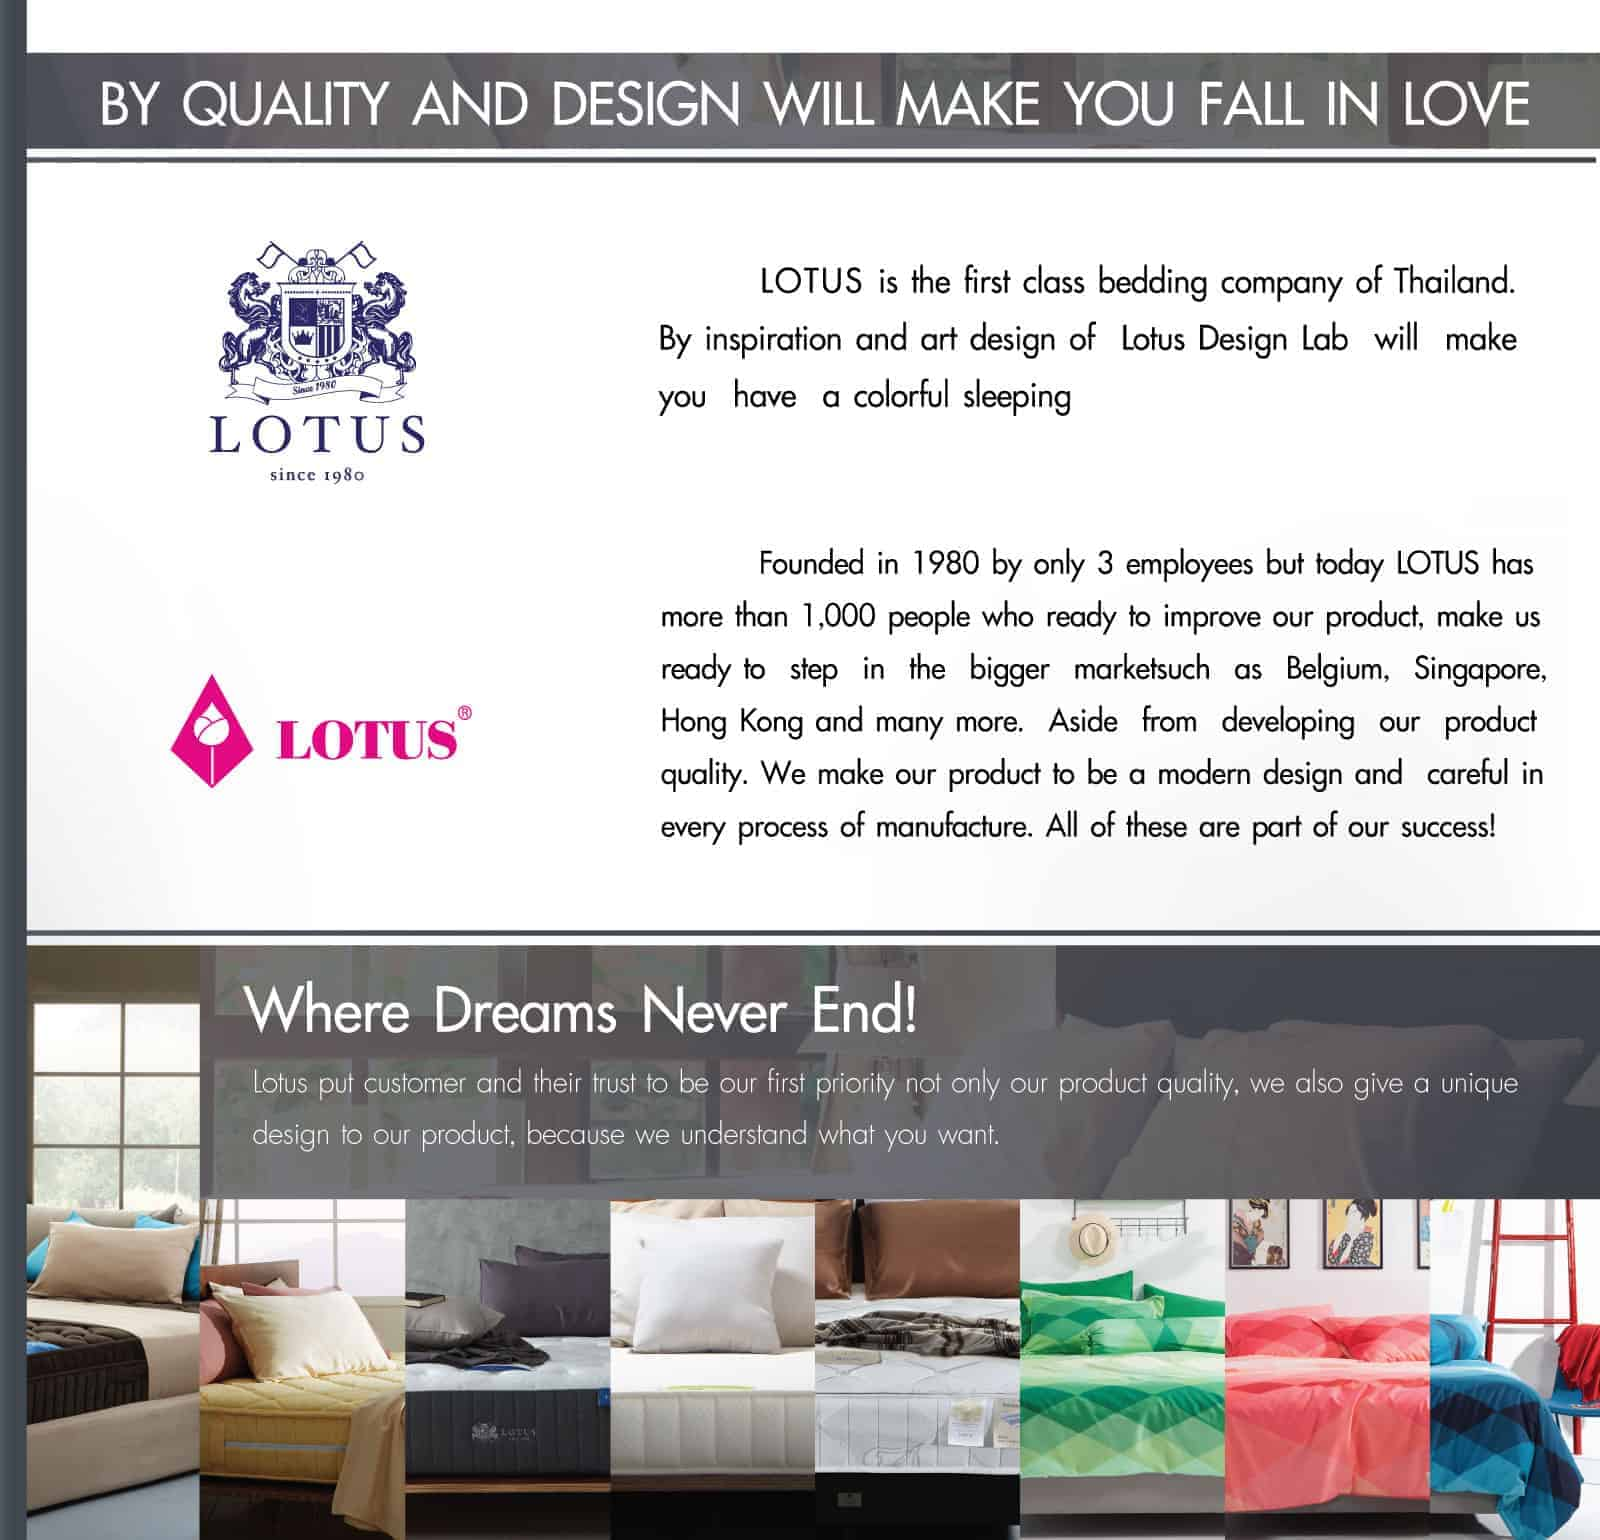 Lotus Foam Spring Mattress Delight – Ideal Firm Mattress – Thickness 10 inches – Warranty 10 years 5